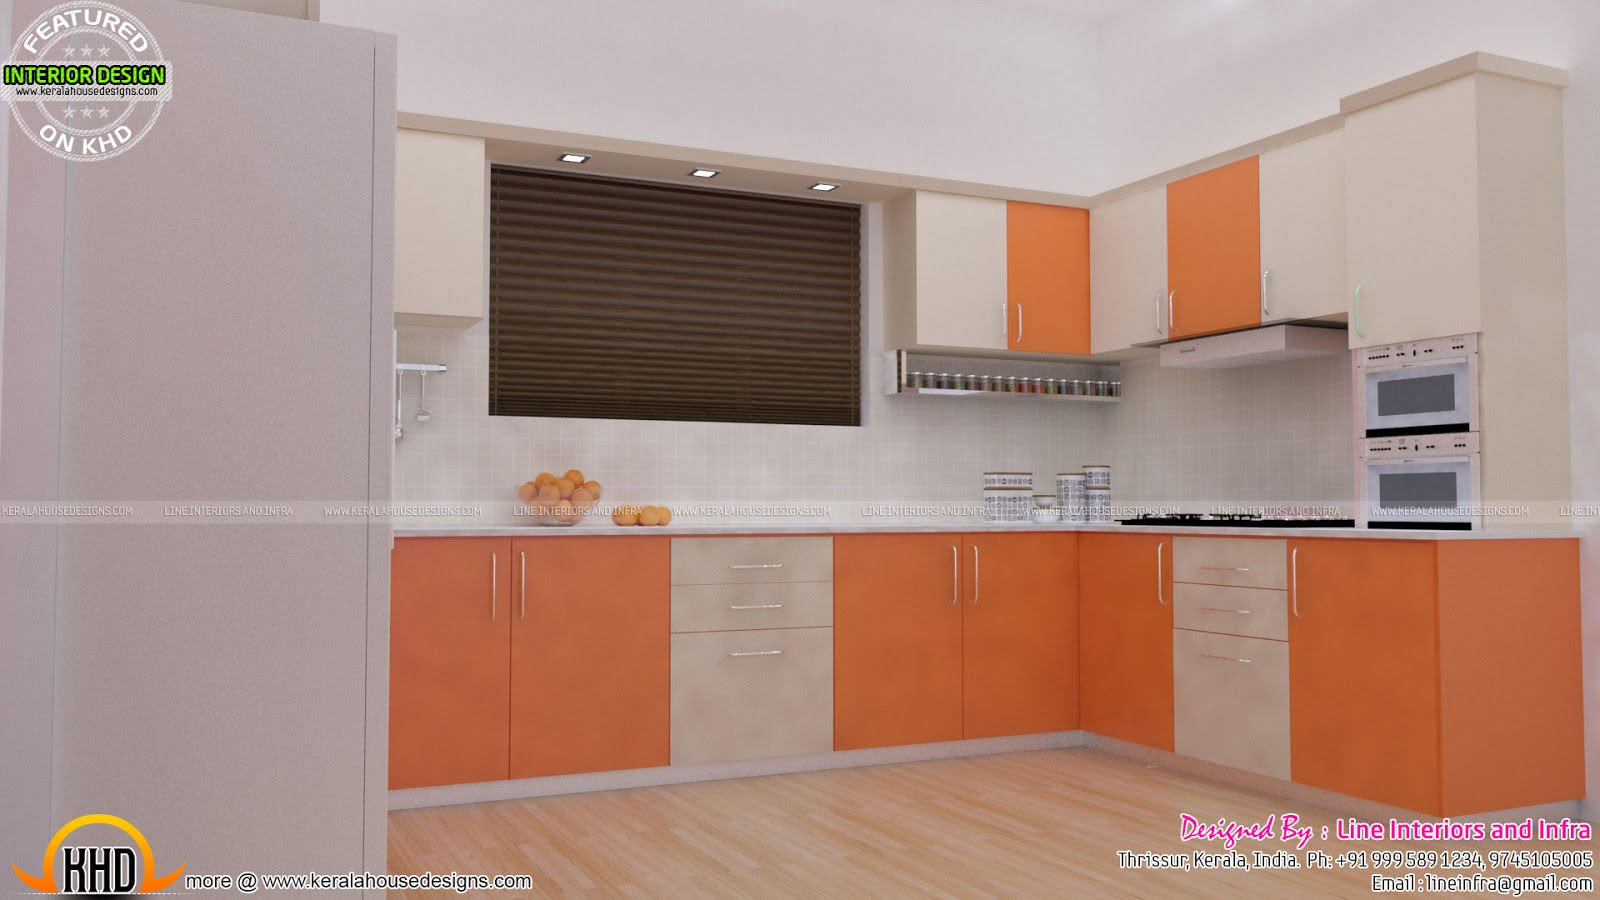 Bedroom And Kitchen Interior Decor Kerala Home Design: bedroom with kitchen design